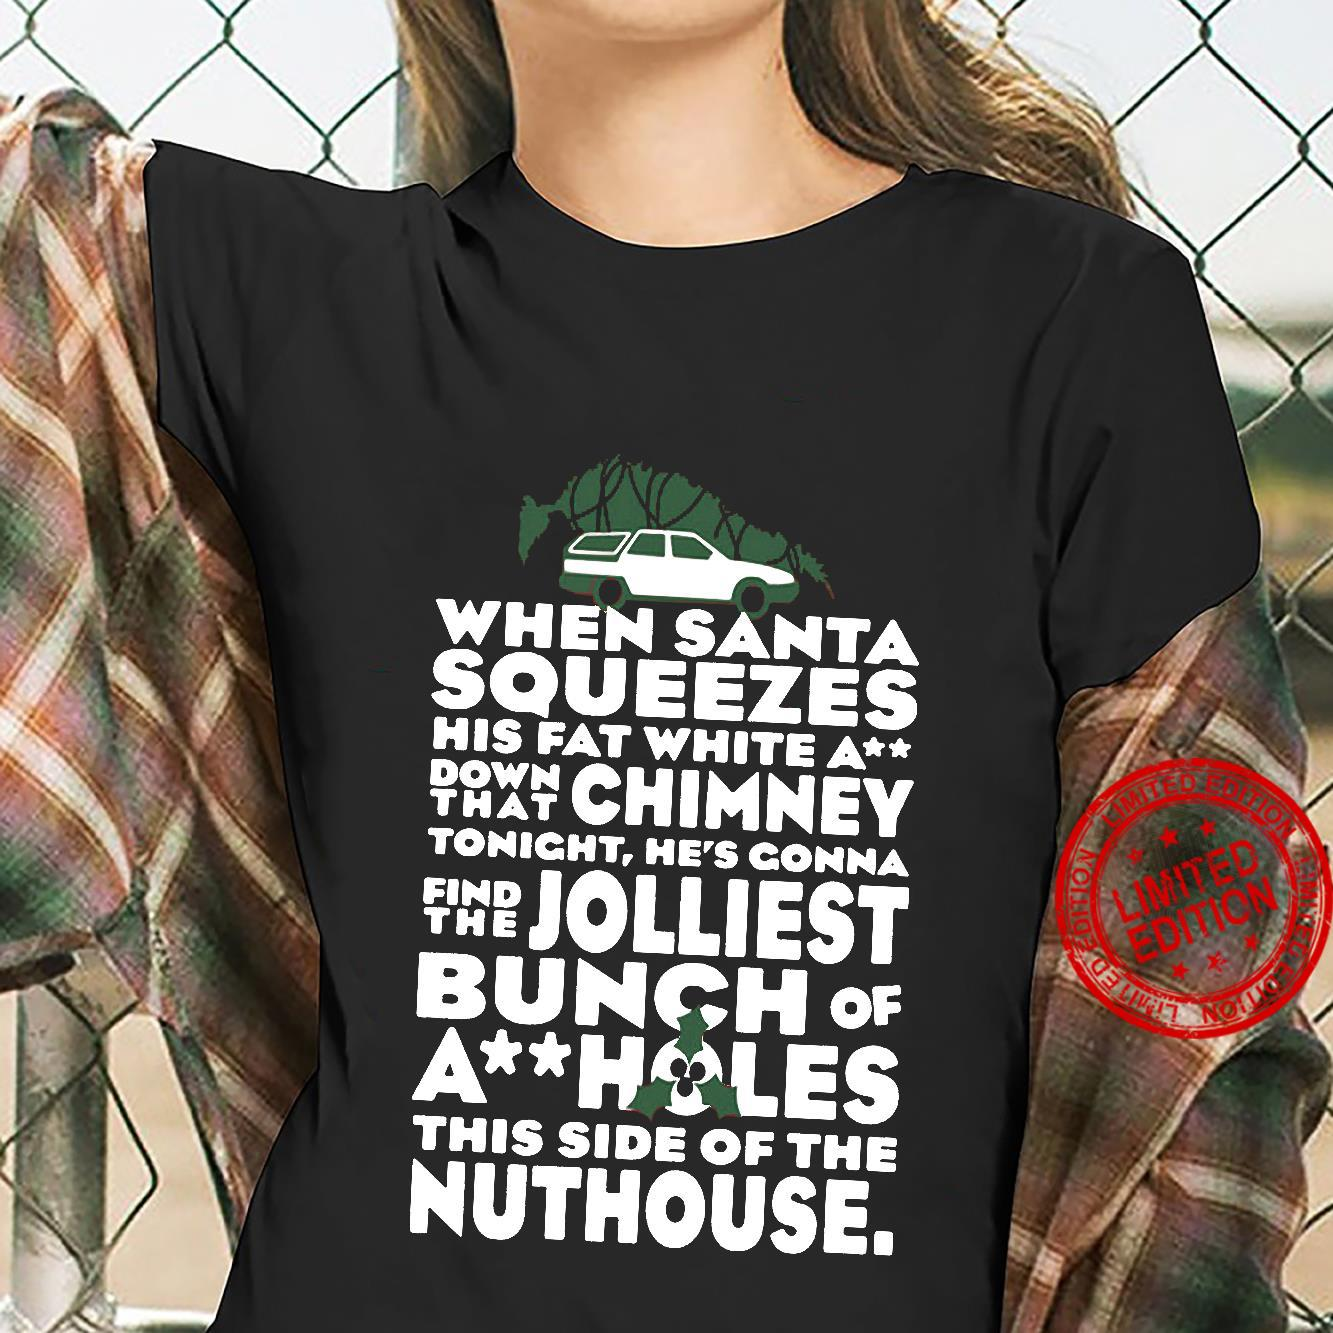 When Santa Squeezes His Fat White A Down That Chimney Tonight, He's Gonna Find The Jolliest Bunch Of Ass Holes Women T-Shirt ladies tee